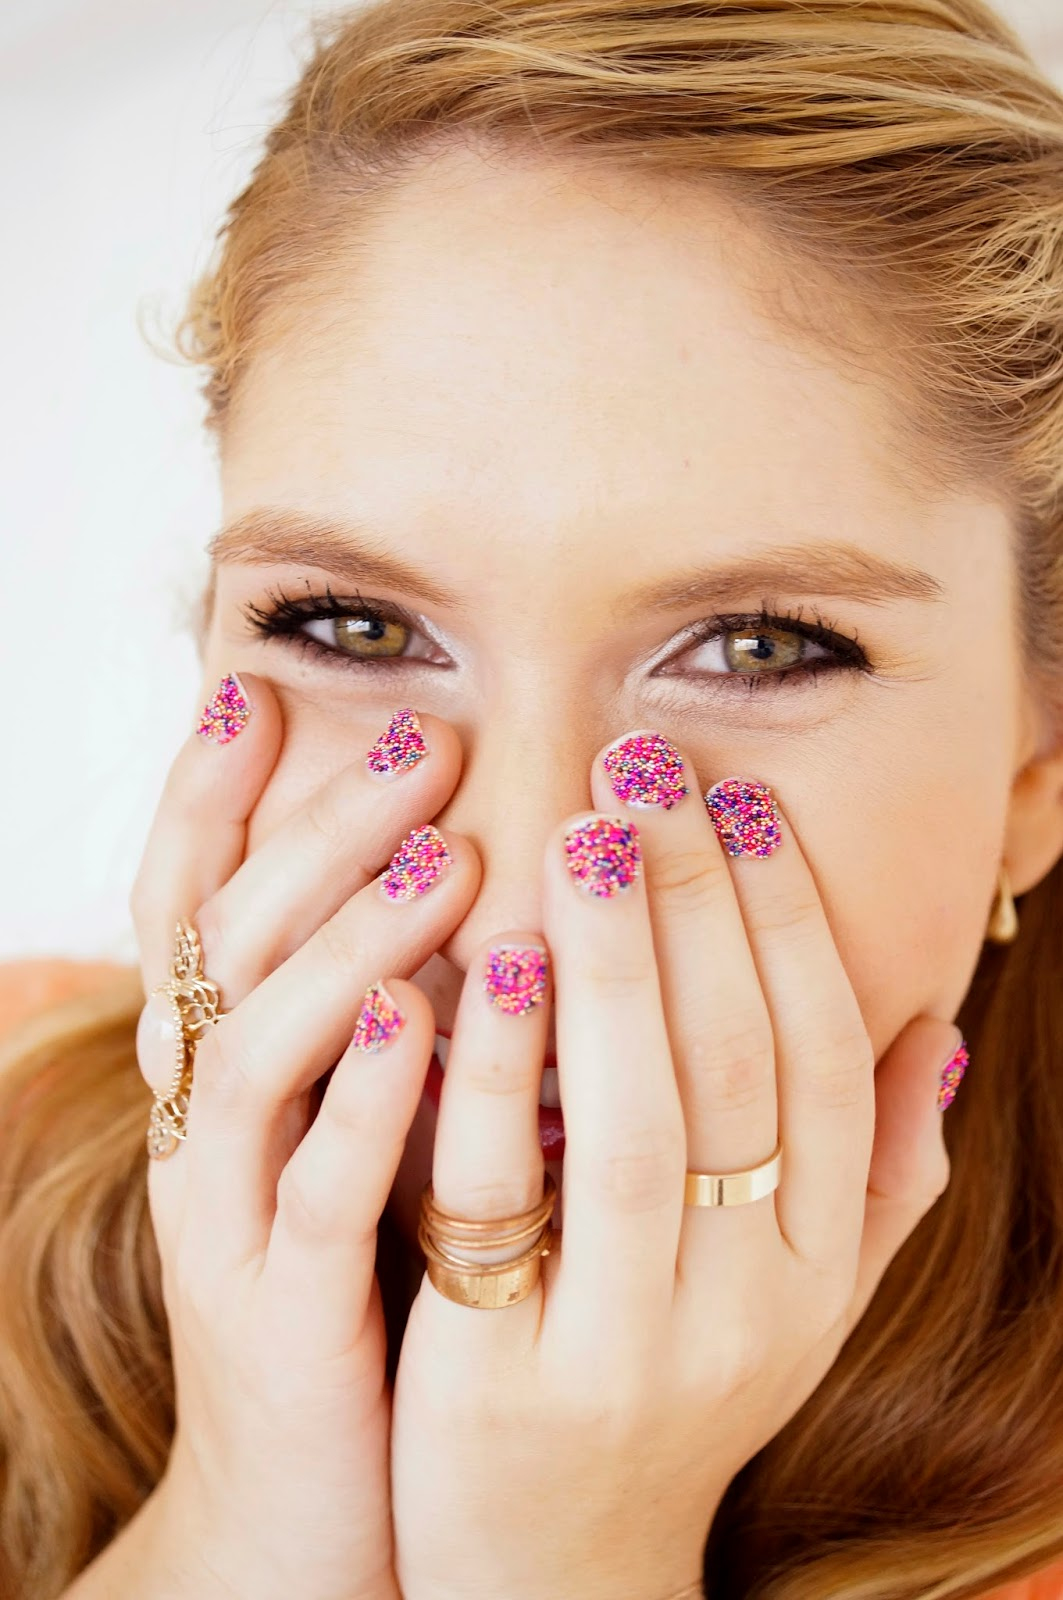 These Sprinkles nails are so cute!